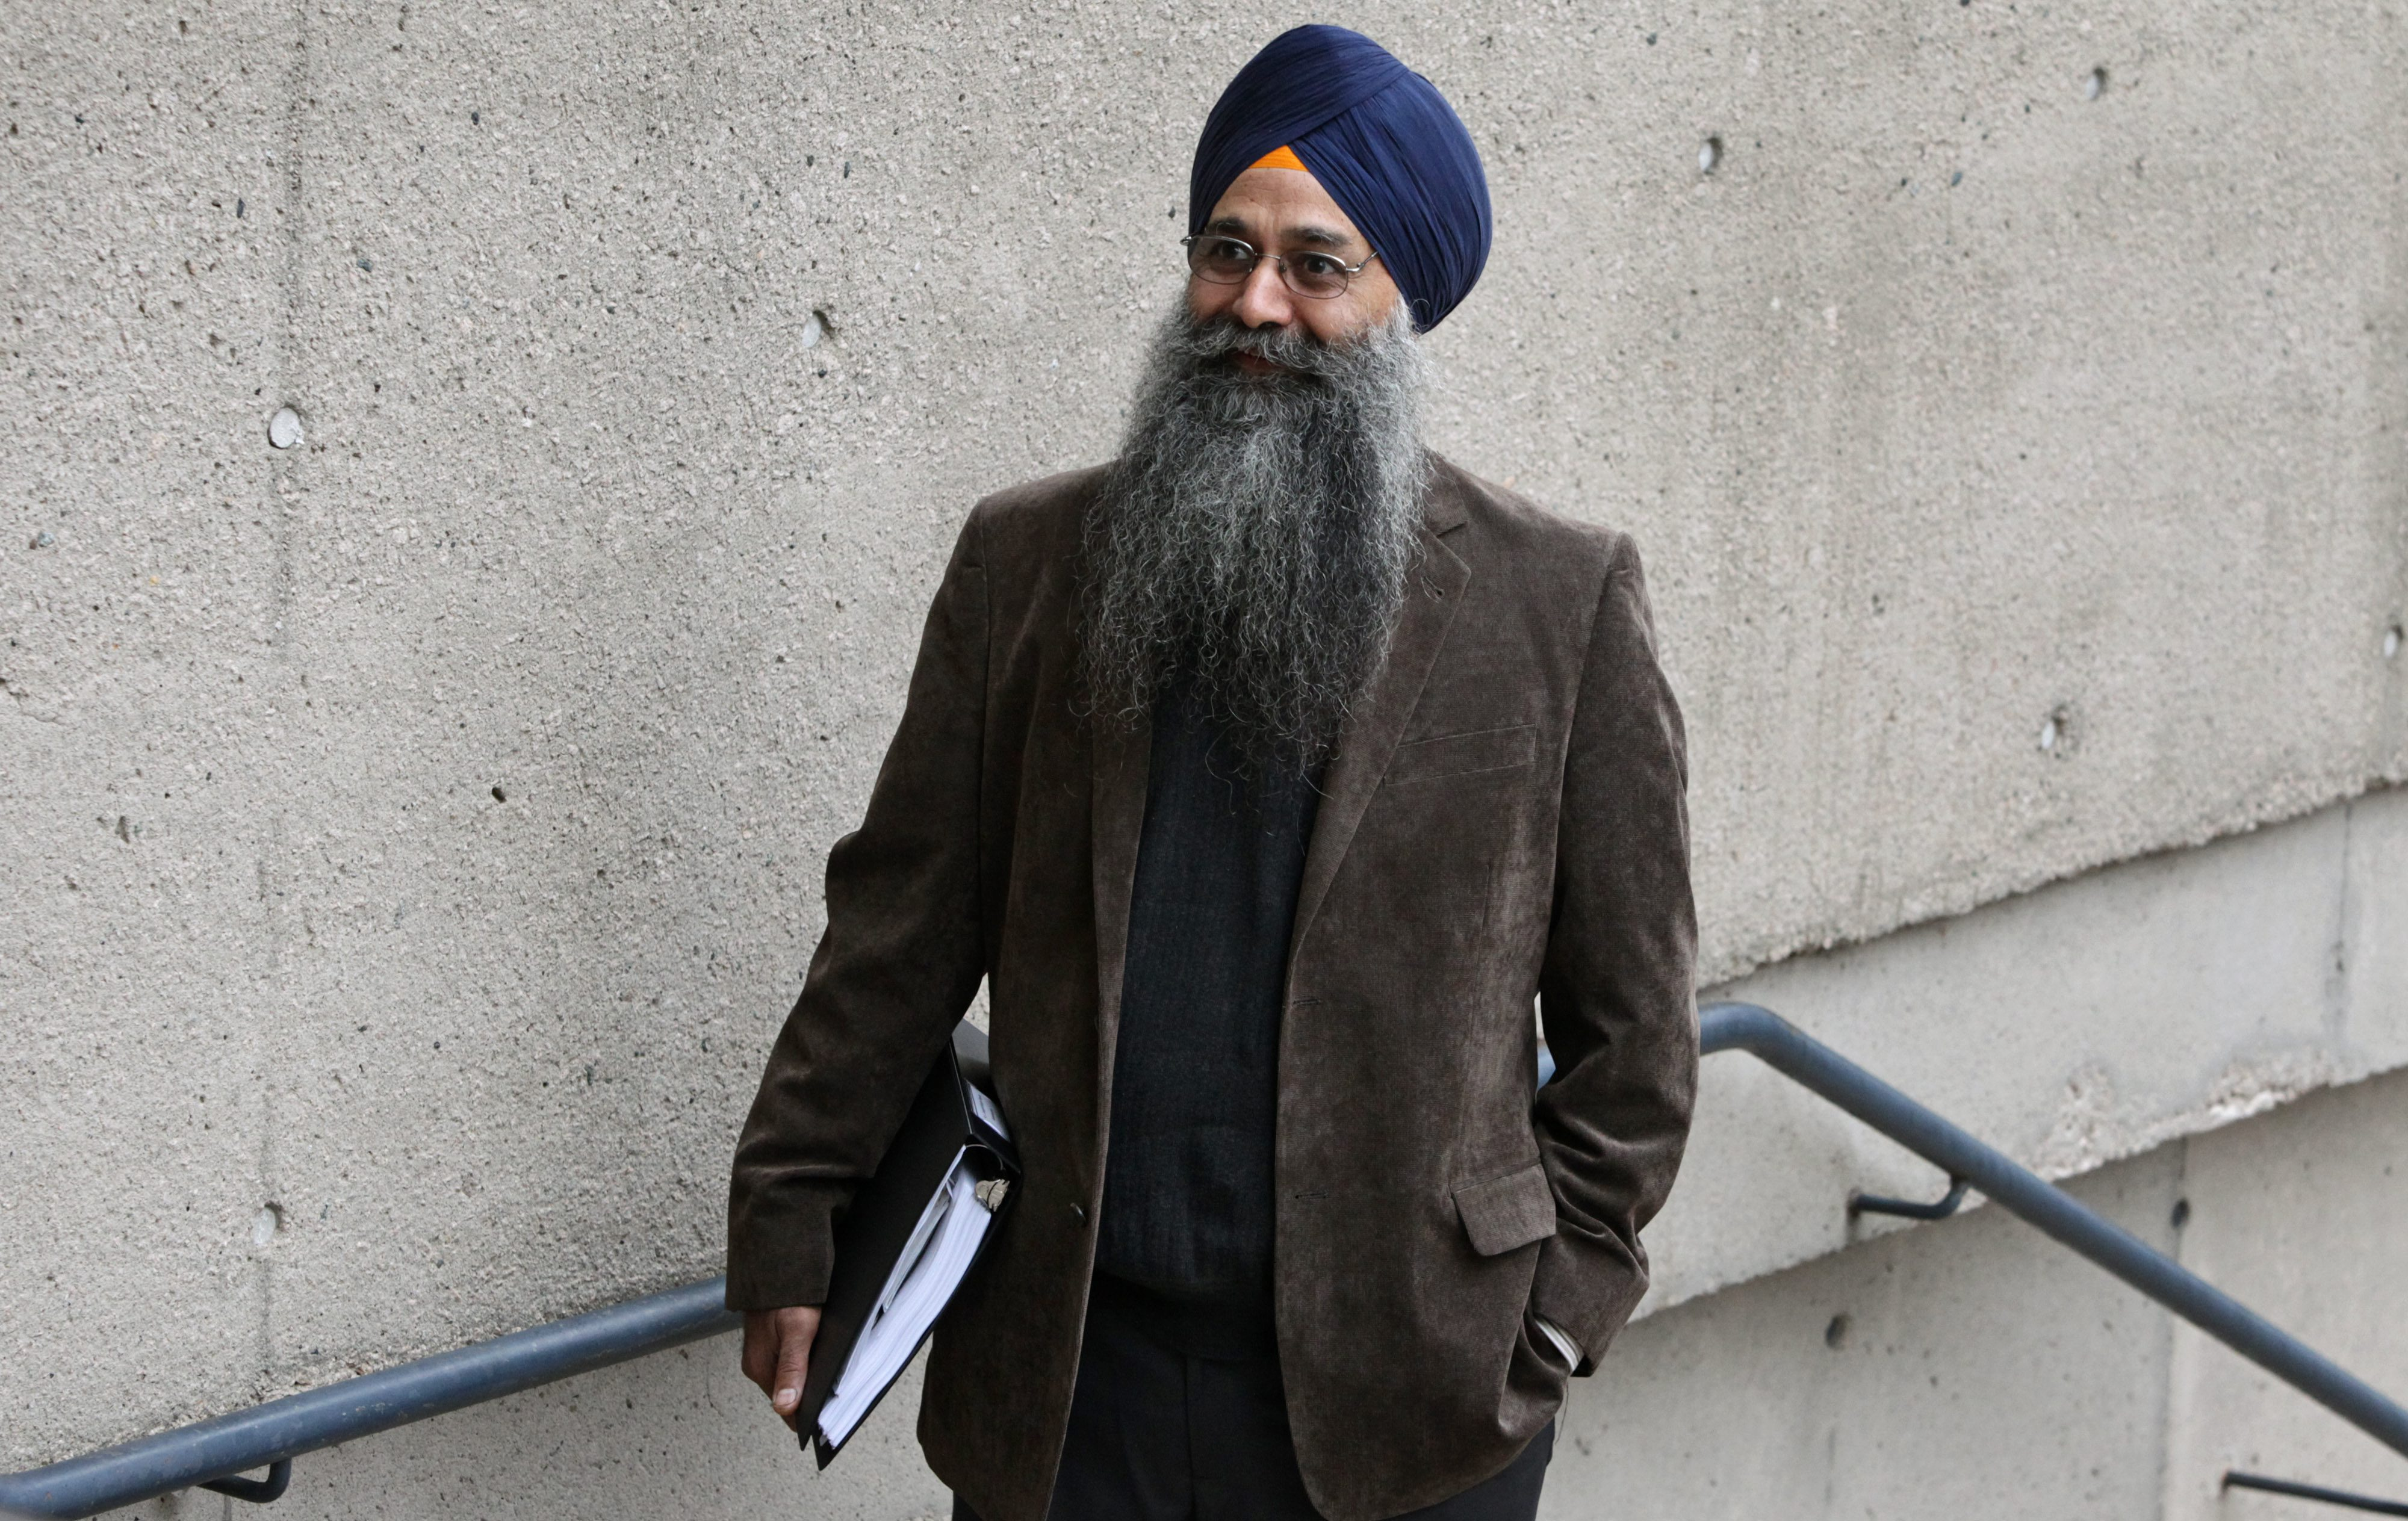 Inderjit Singh Reyat, the only person convicted for the 1985 bombing of Air India Flight 182.